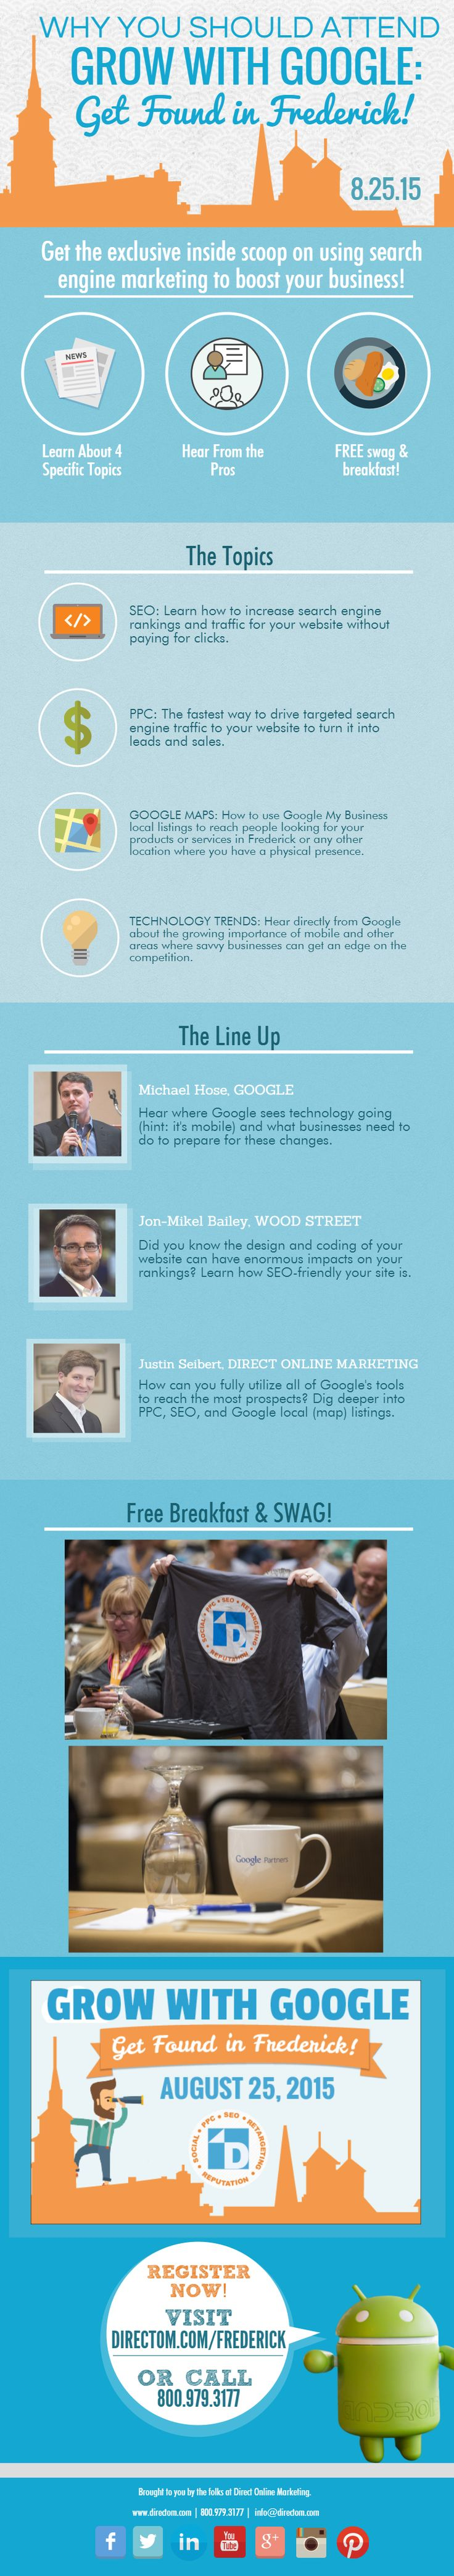 Get the exclusive inside scoop on using search enginge marketing to boost your business! Register online at www.directom.com/frederick! Event is being held on August 25th in Frederick, MD!